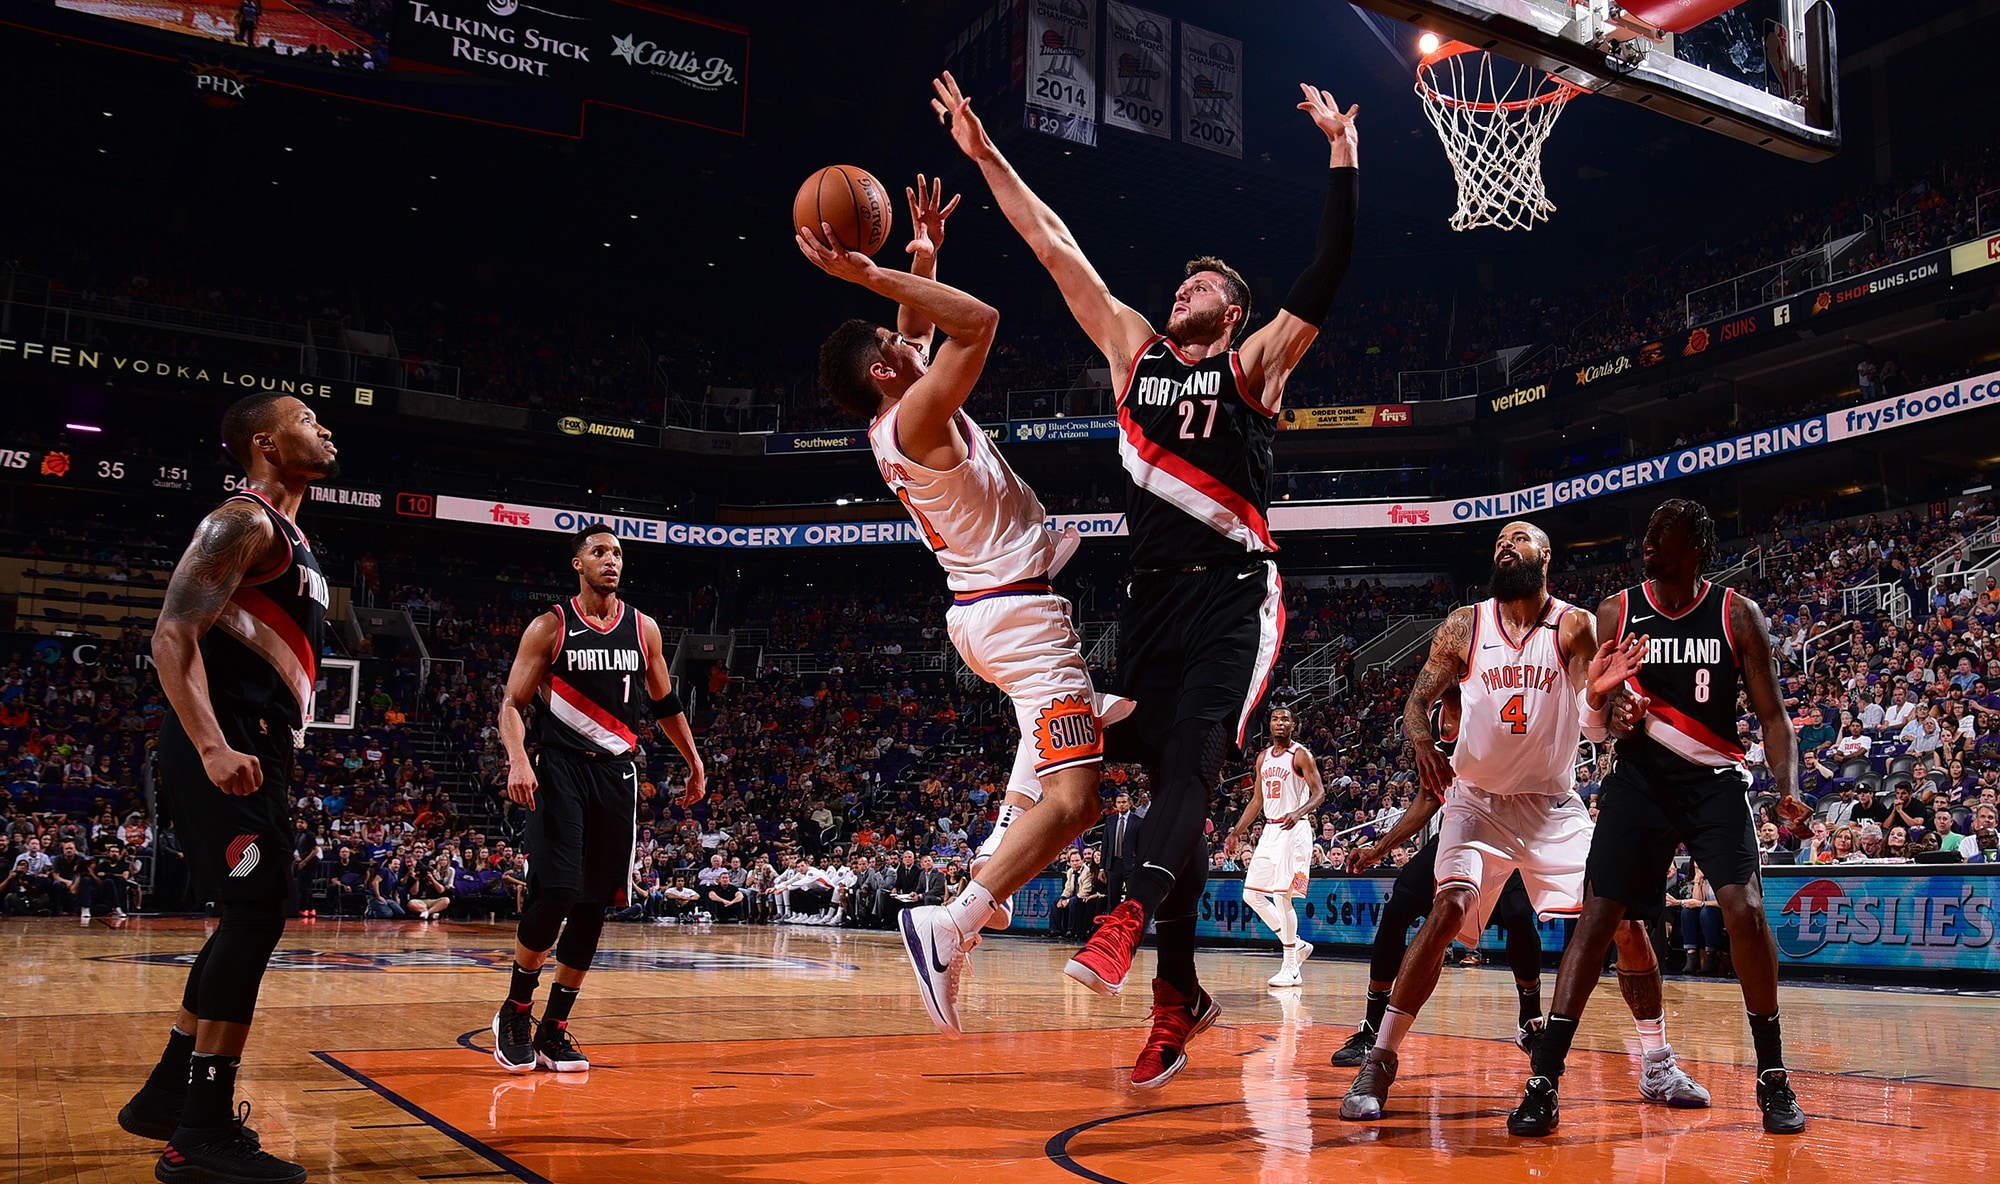 Blazers Post Largest Opening Night Margin Of Victory In NBA History Versus Suns